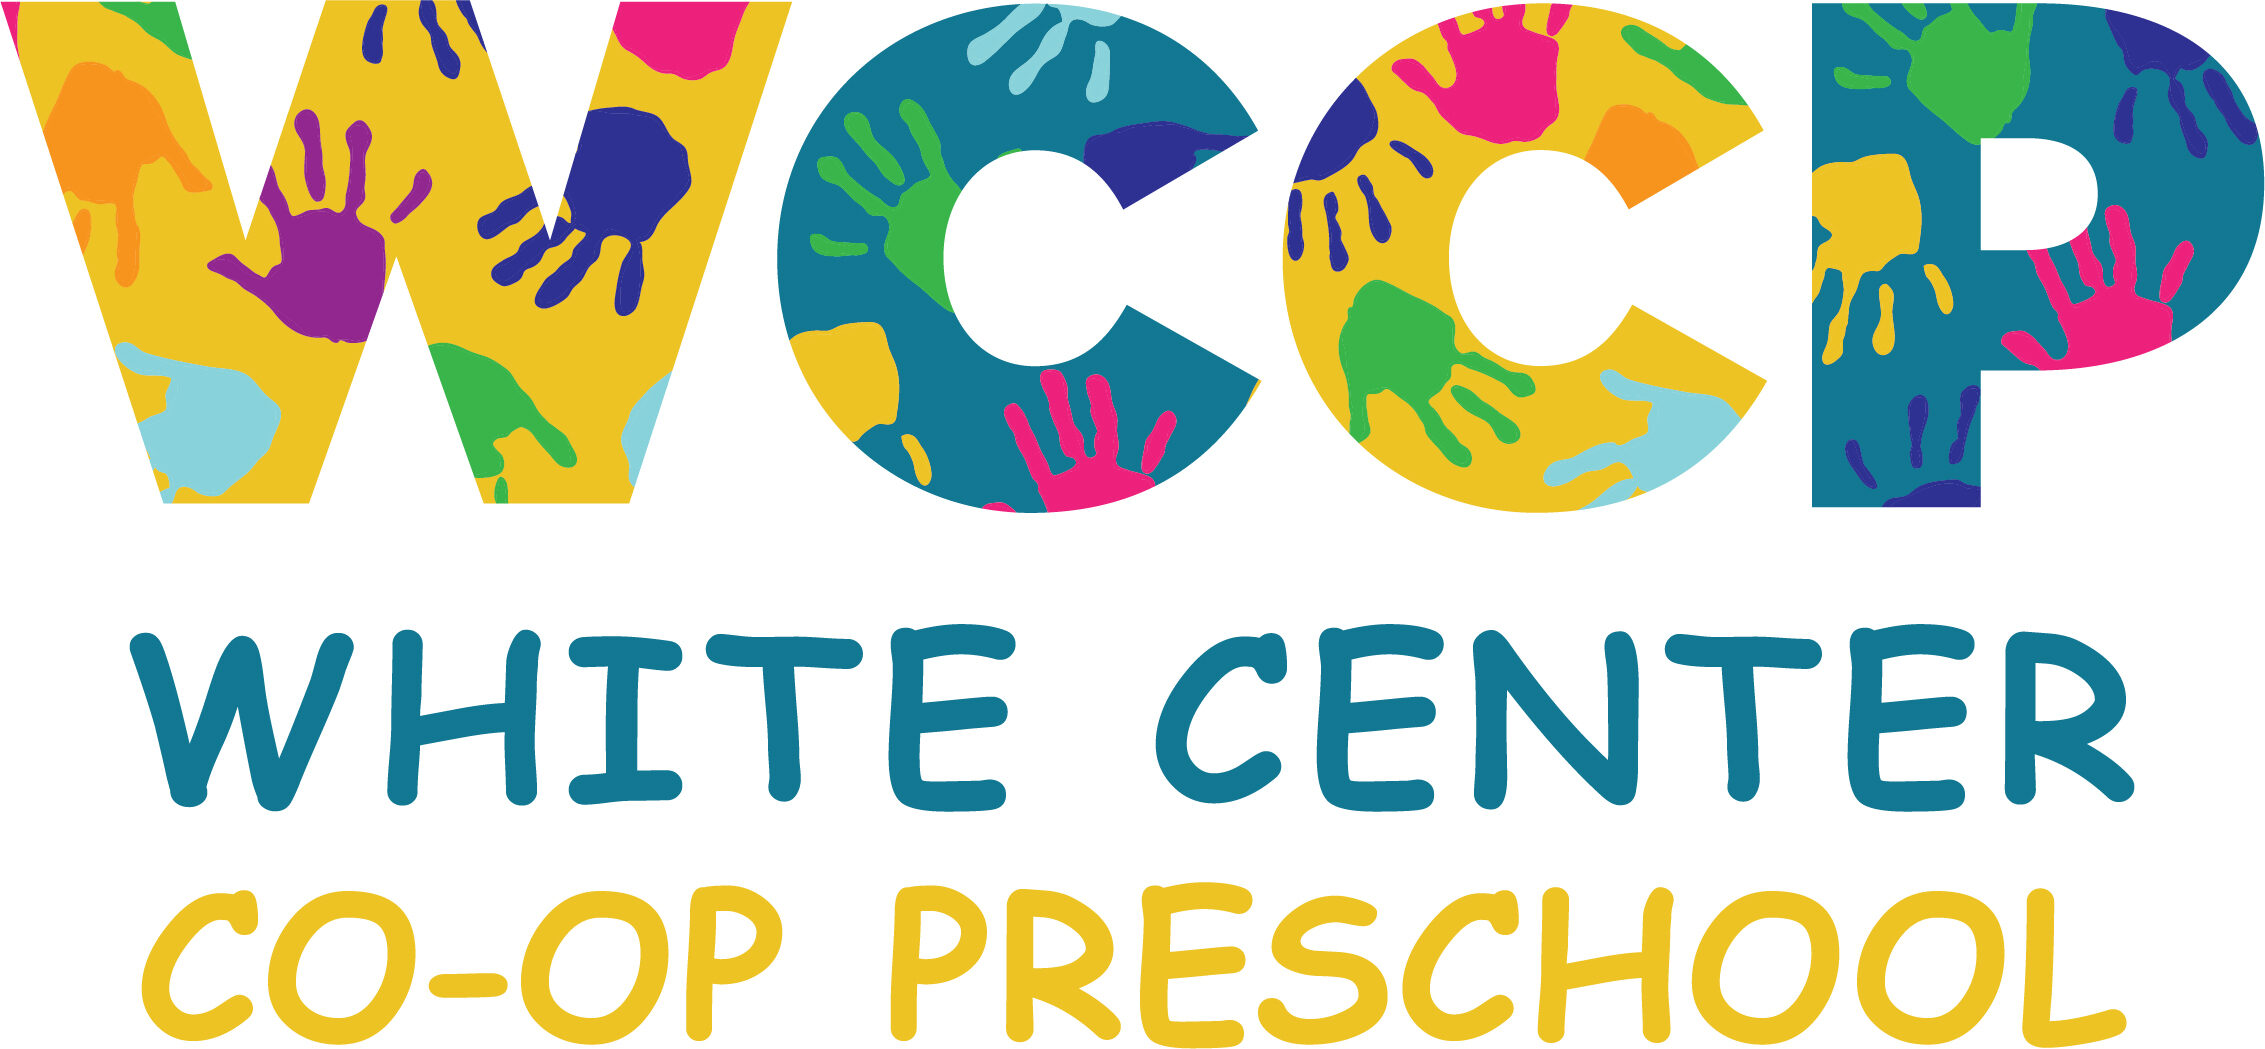 White Center Cooperative Preschool